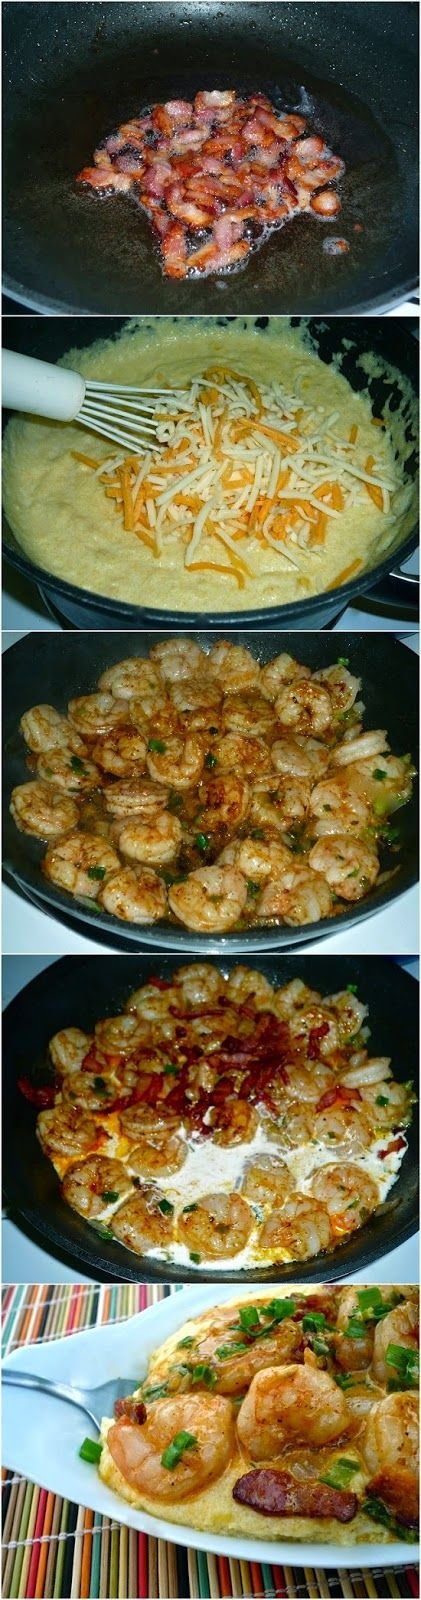 Cheesy Shrimp and Grits. Nom. I mean wow. So good. Did not add heavy cream at end. Didn't need it. Make sure to really pour in the cornmeal slowly otherwise you get some lumps. Delicious. Incredible. Bravo